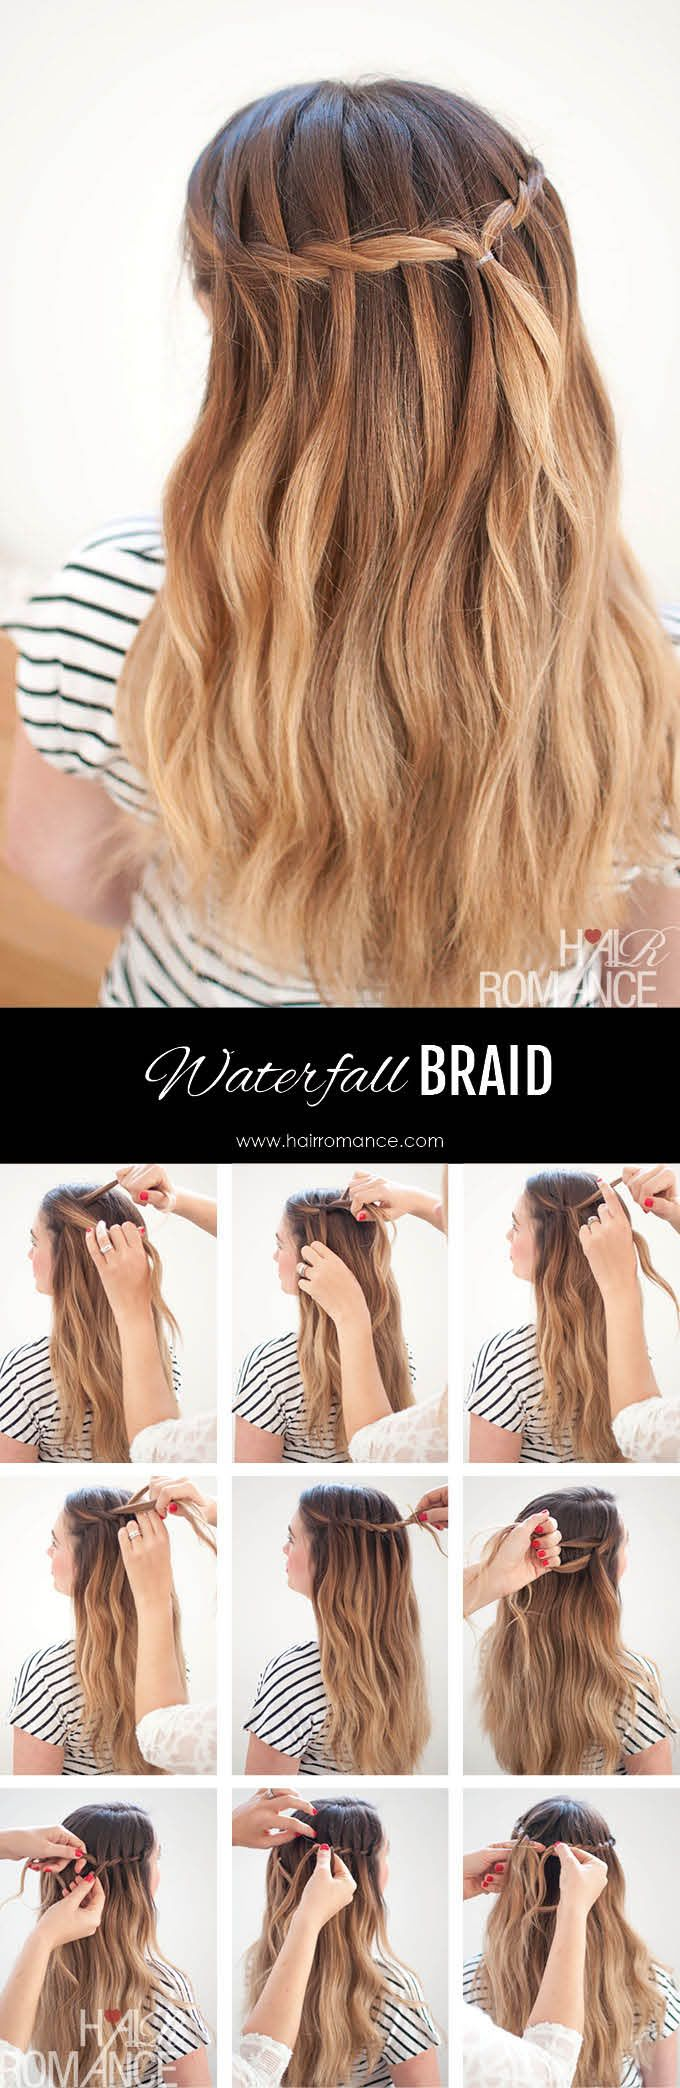 Waterfall Mermaid Braid Tutorial for Long Hair - Hair Romance